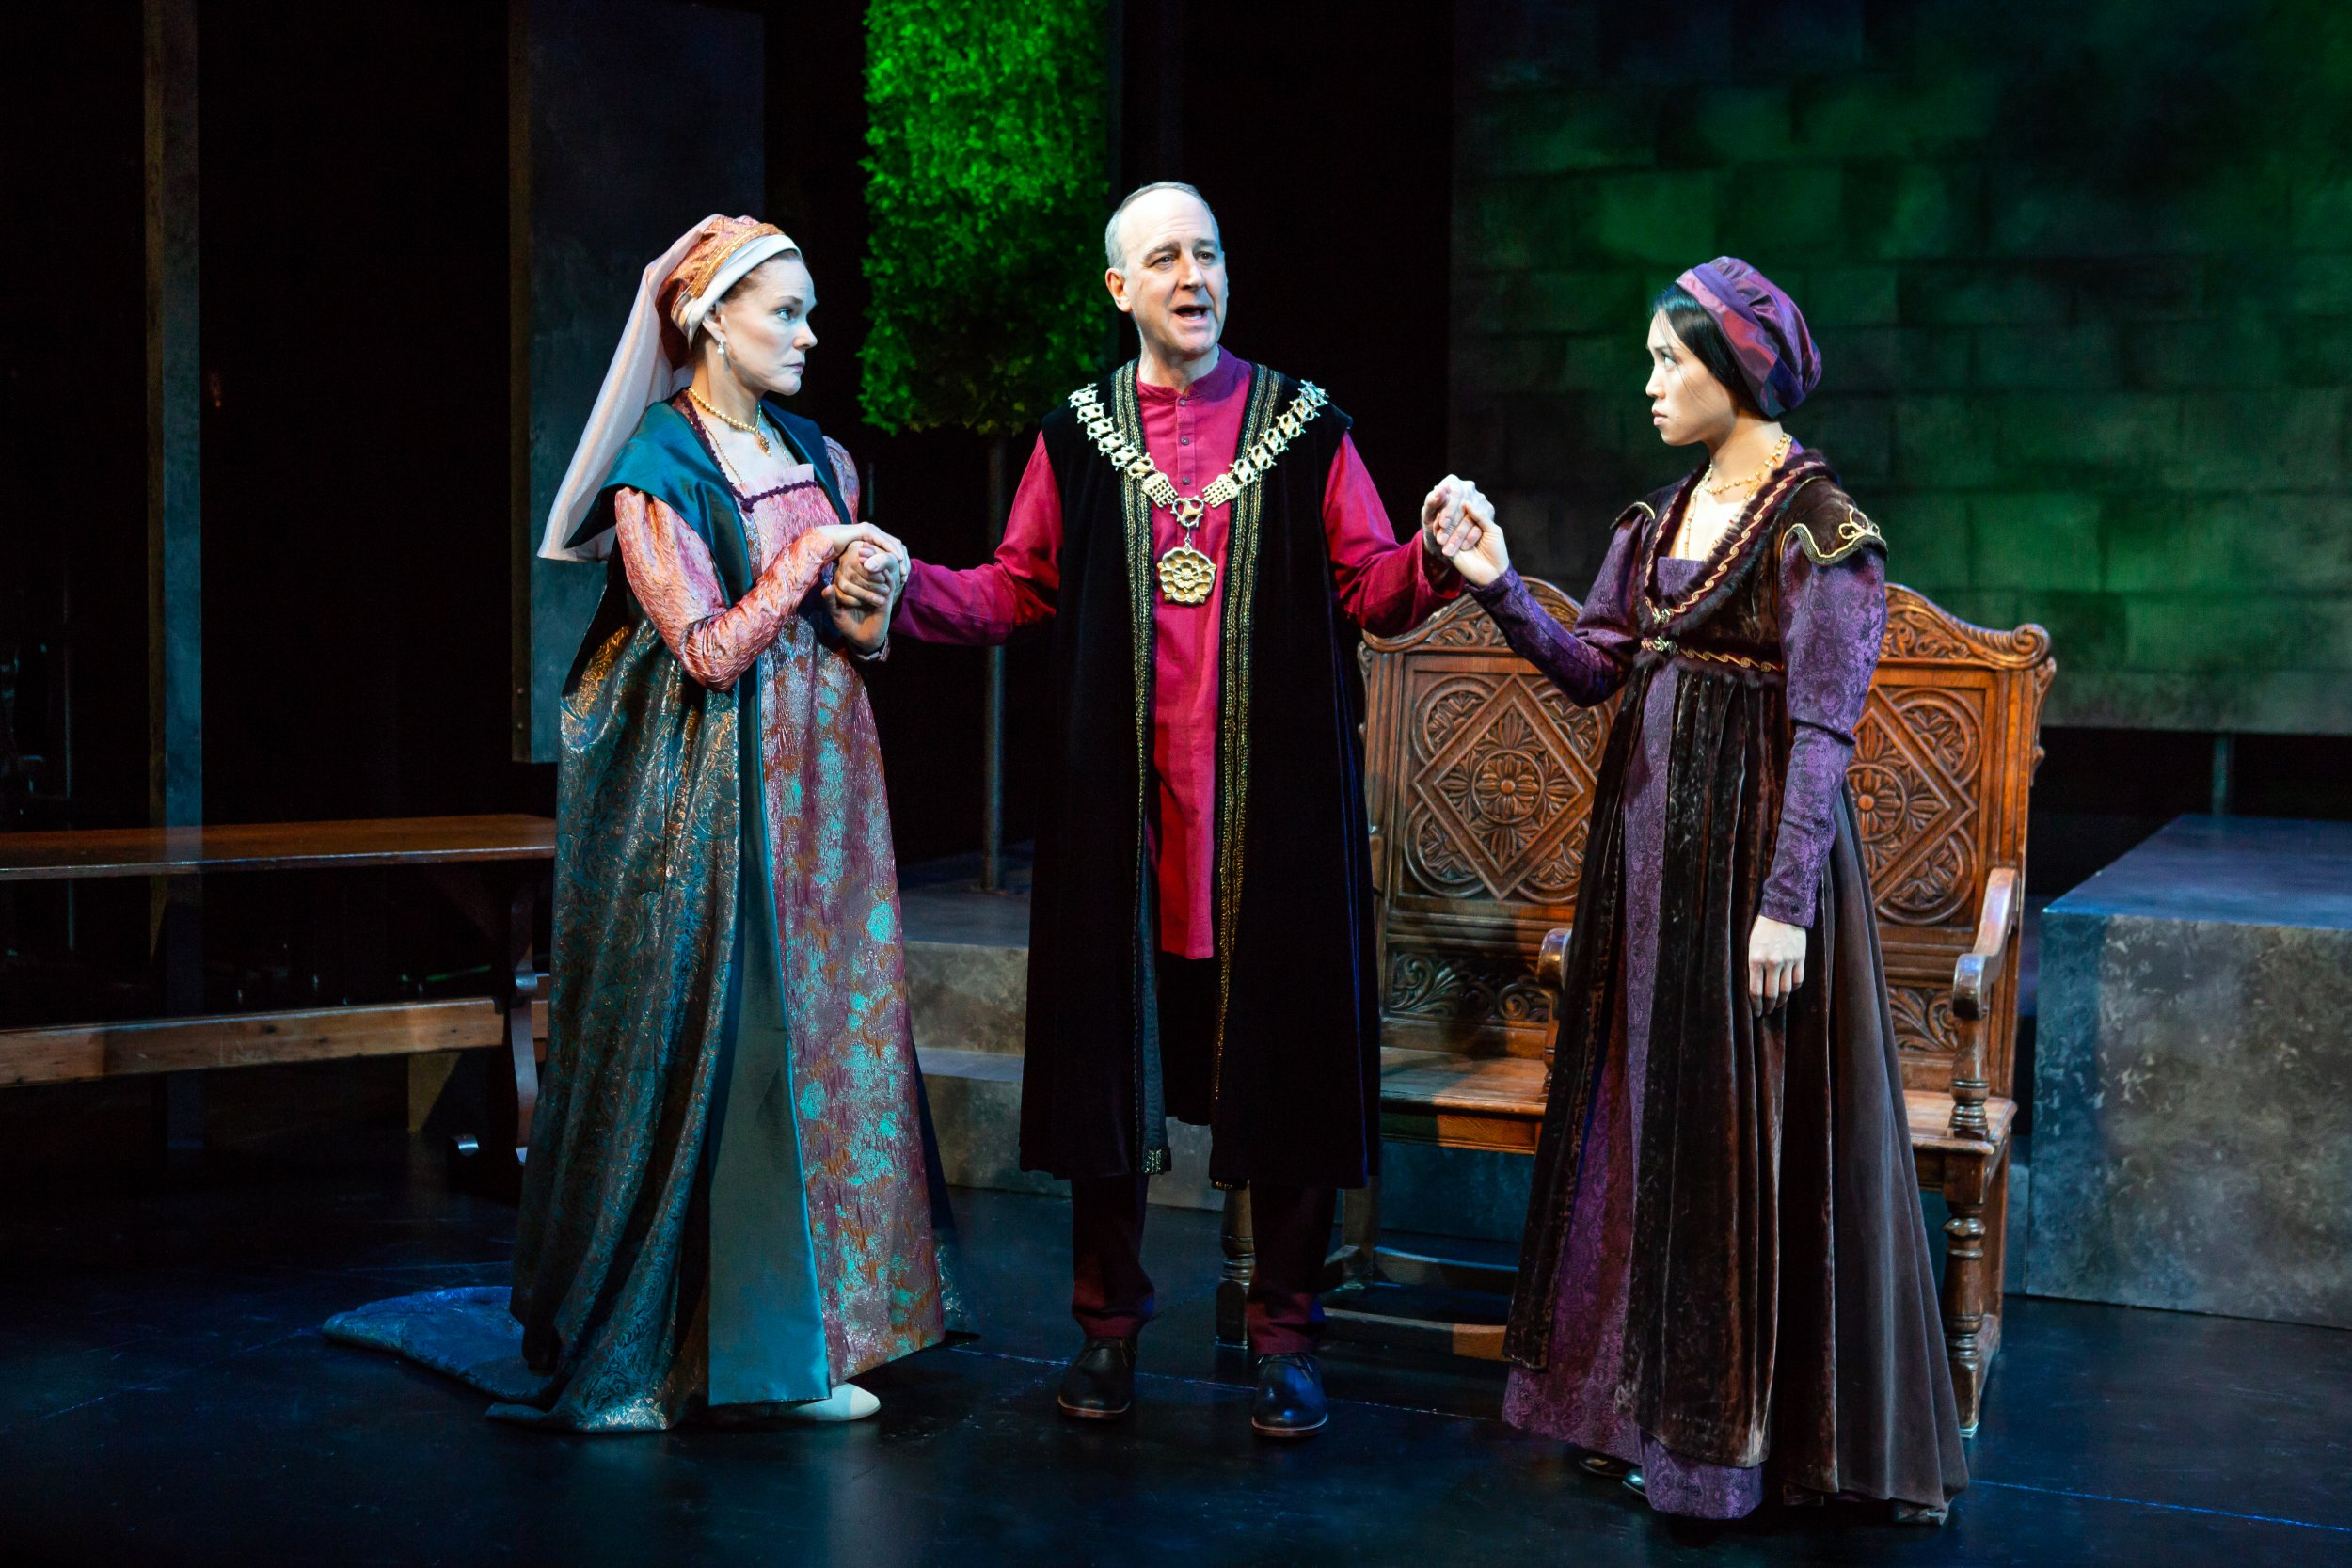 Carolyn McCormick, Michael Countryman, and Kim Wong in Fellowship for Performing Arts' production of A MAN FOR ALL SEASONS - Photo by Jeremy Daniel